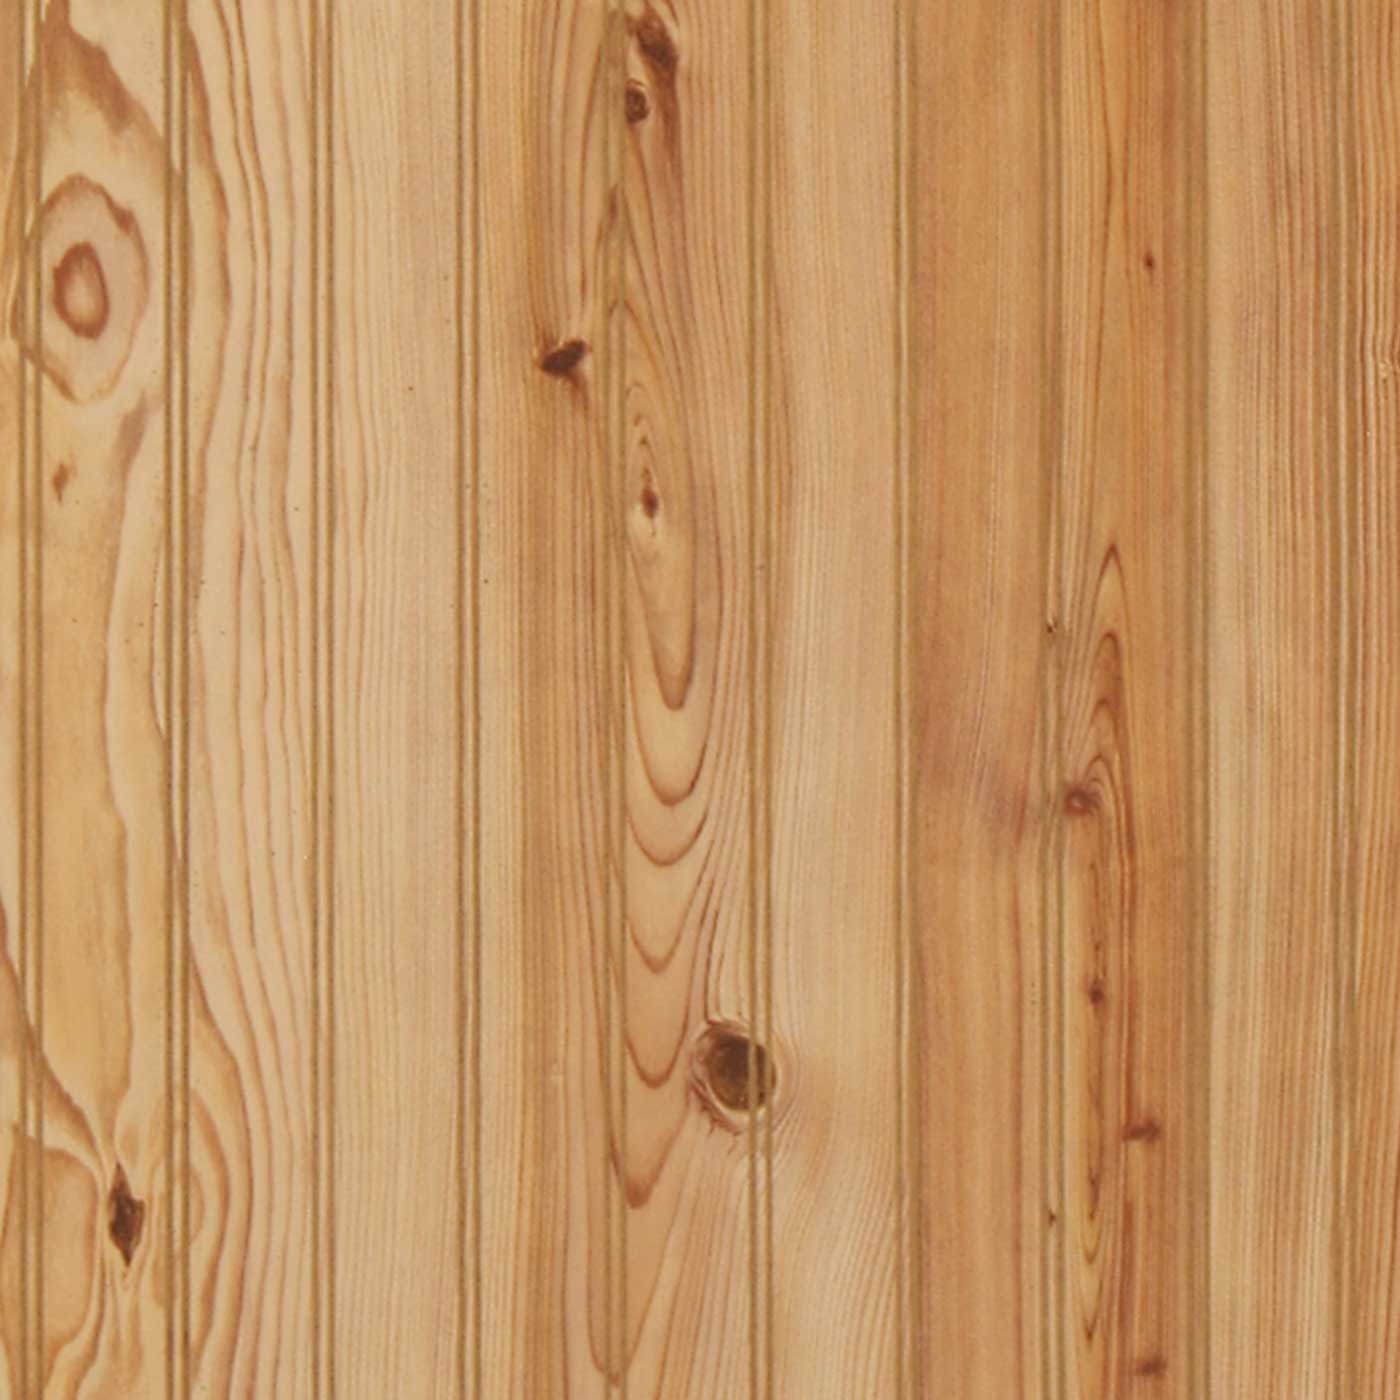 Beadboard paneling ridge pine wall paneling knotty pine How to cover old wood paneling